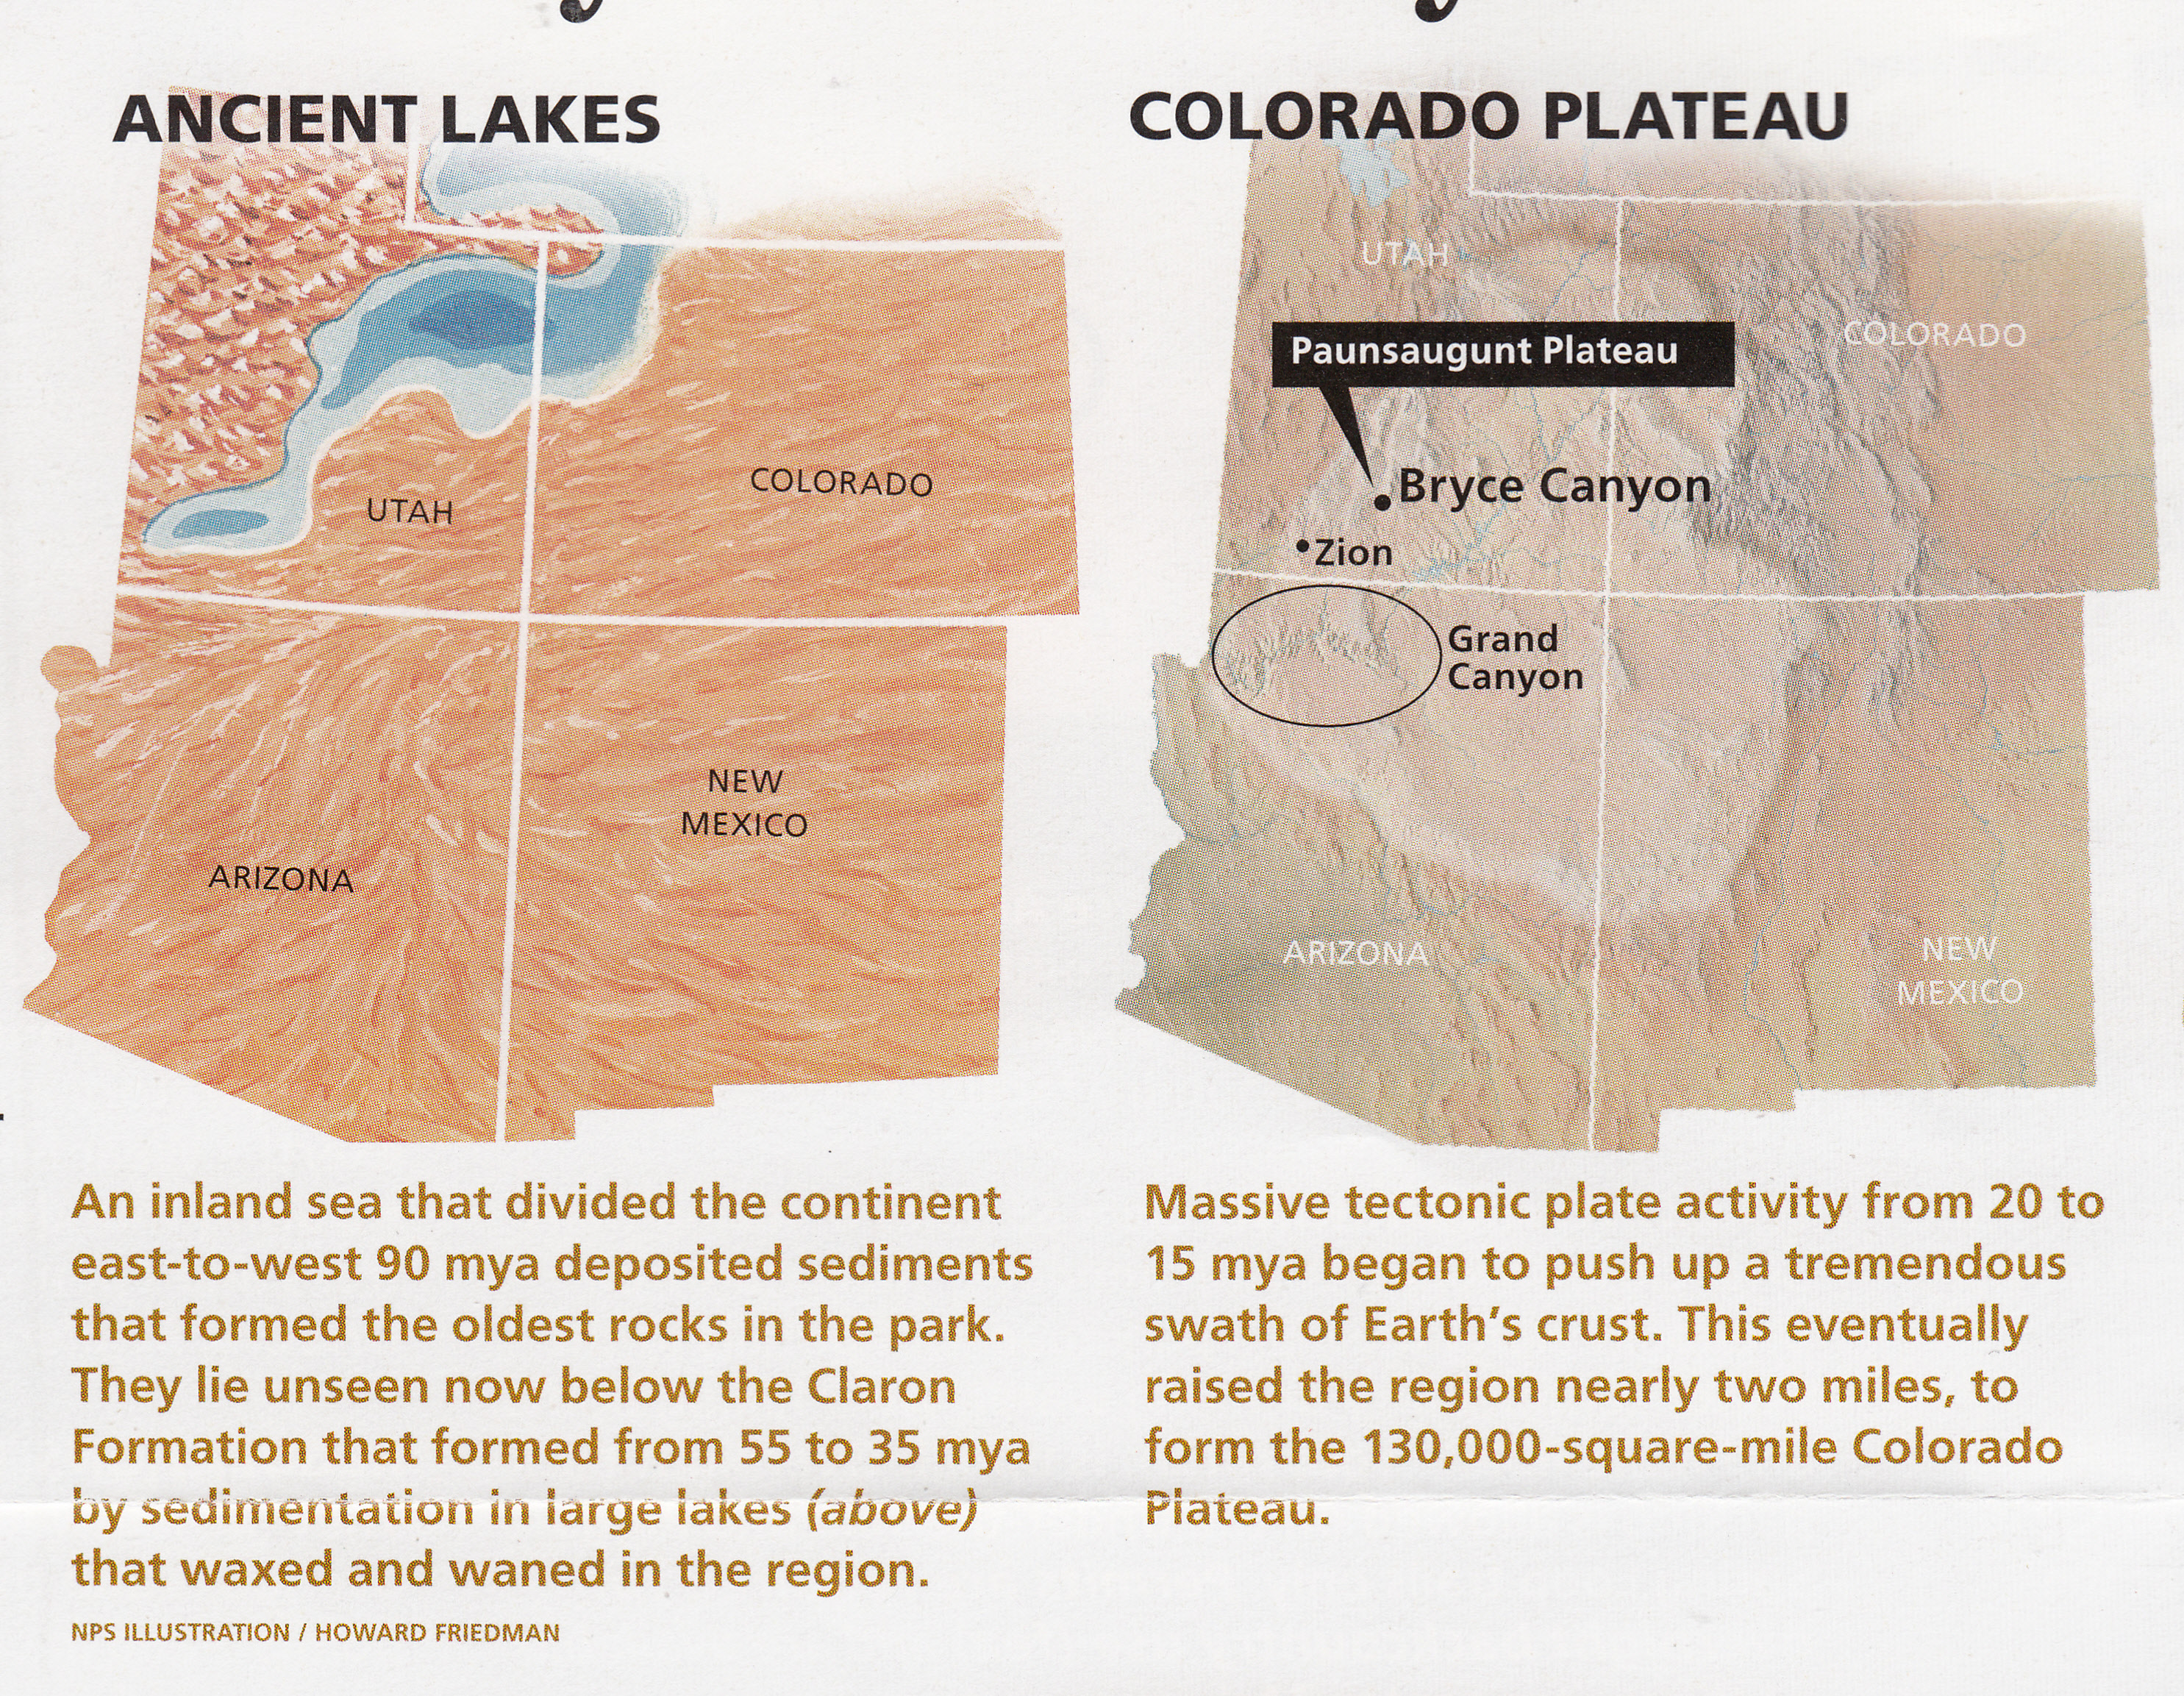 Colorado plateau learn more every day colorado new mexico and arizona this four state area is part of the expansive geological feature called the colorado plateau thatmillions publicscrutiny Images